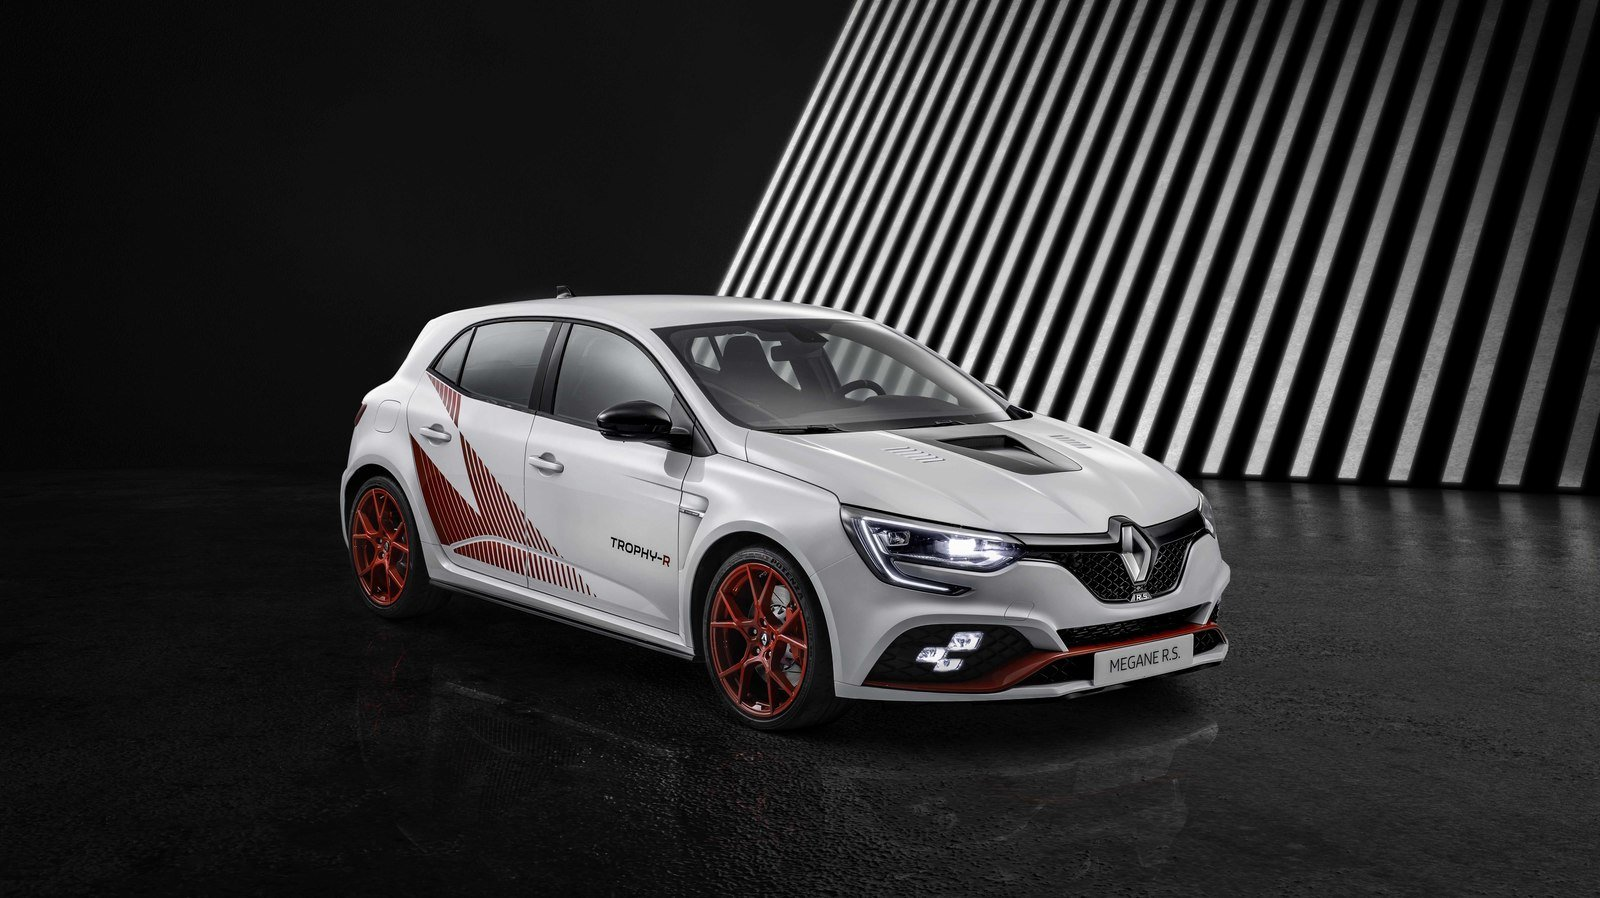 Front Wheel Drive Cars >> The Limited-Edition Megane R.S. Trophy-R Is The King Of Pure Hatchbacks And Compact Performance ...